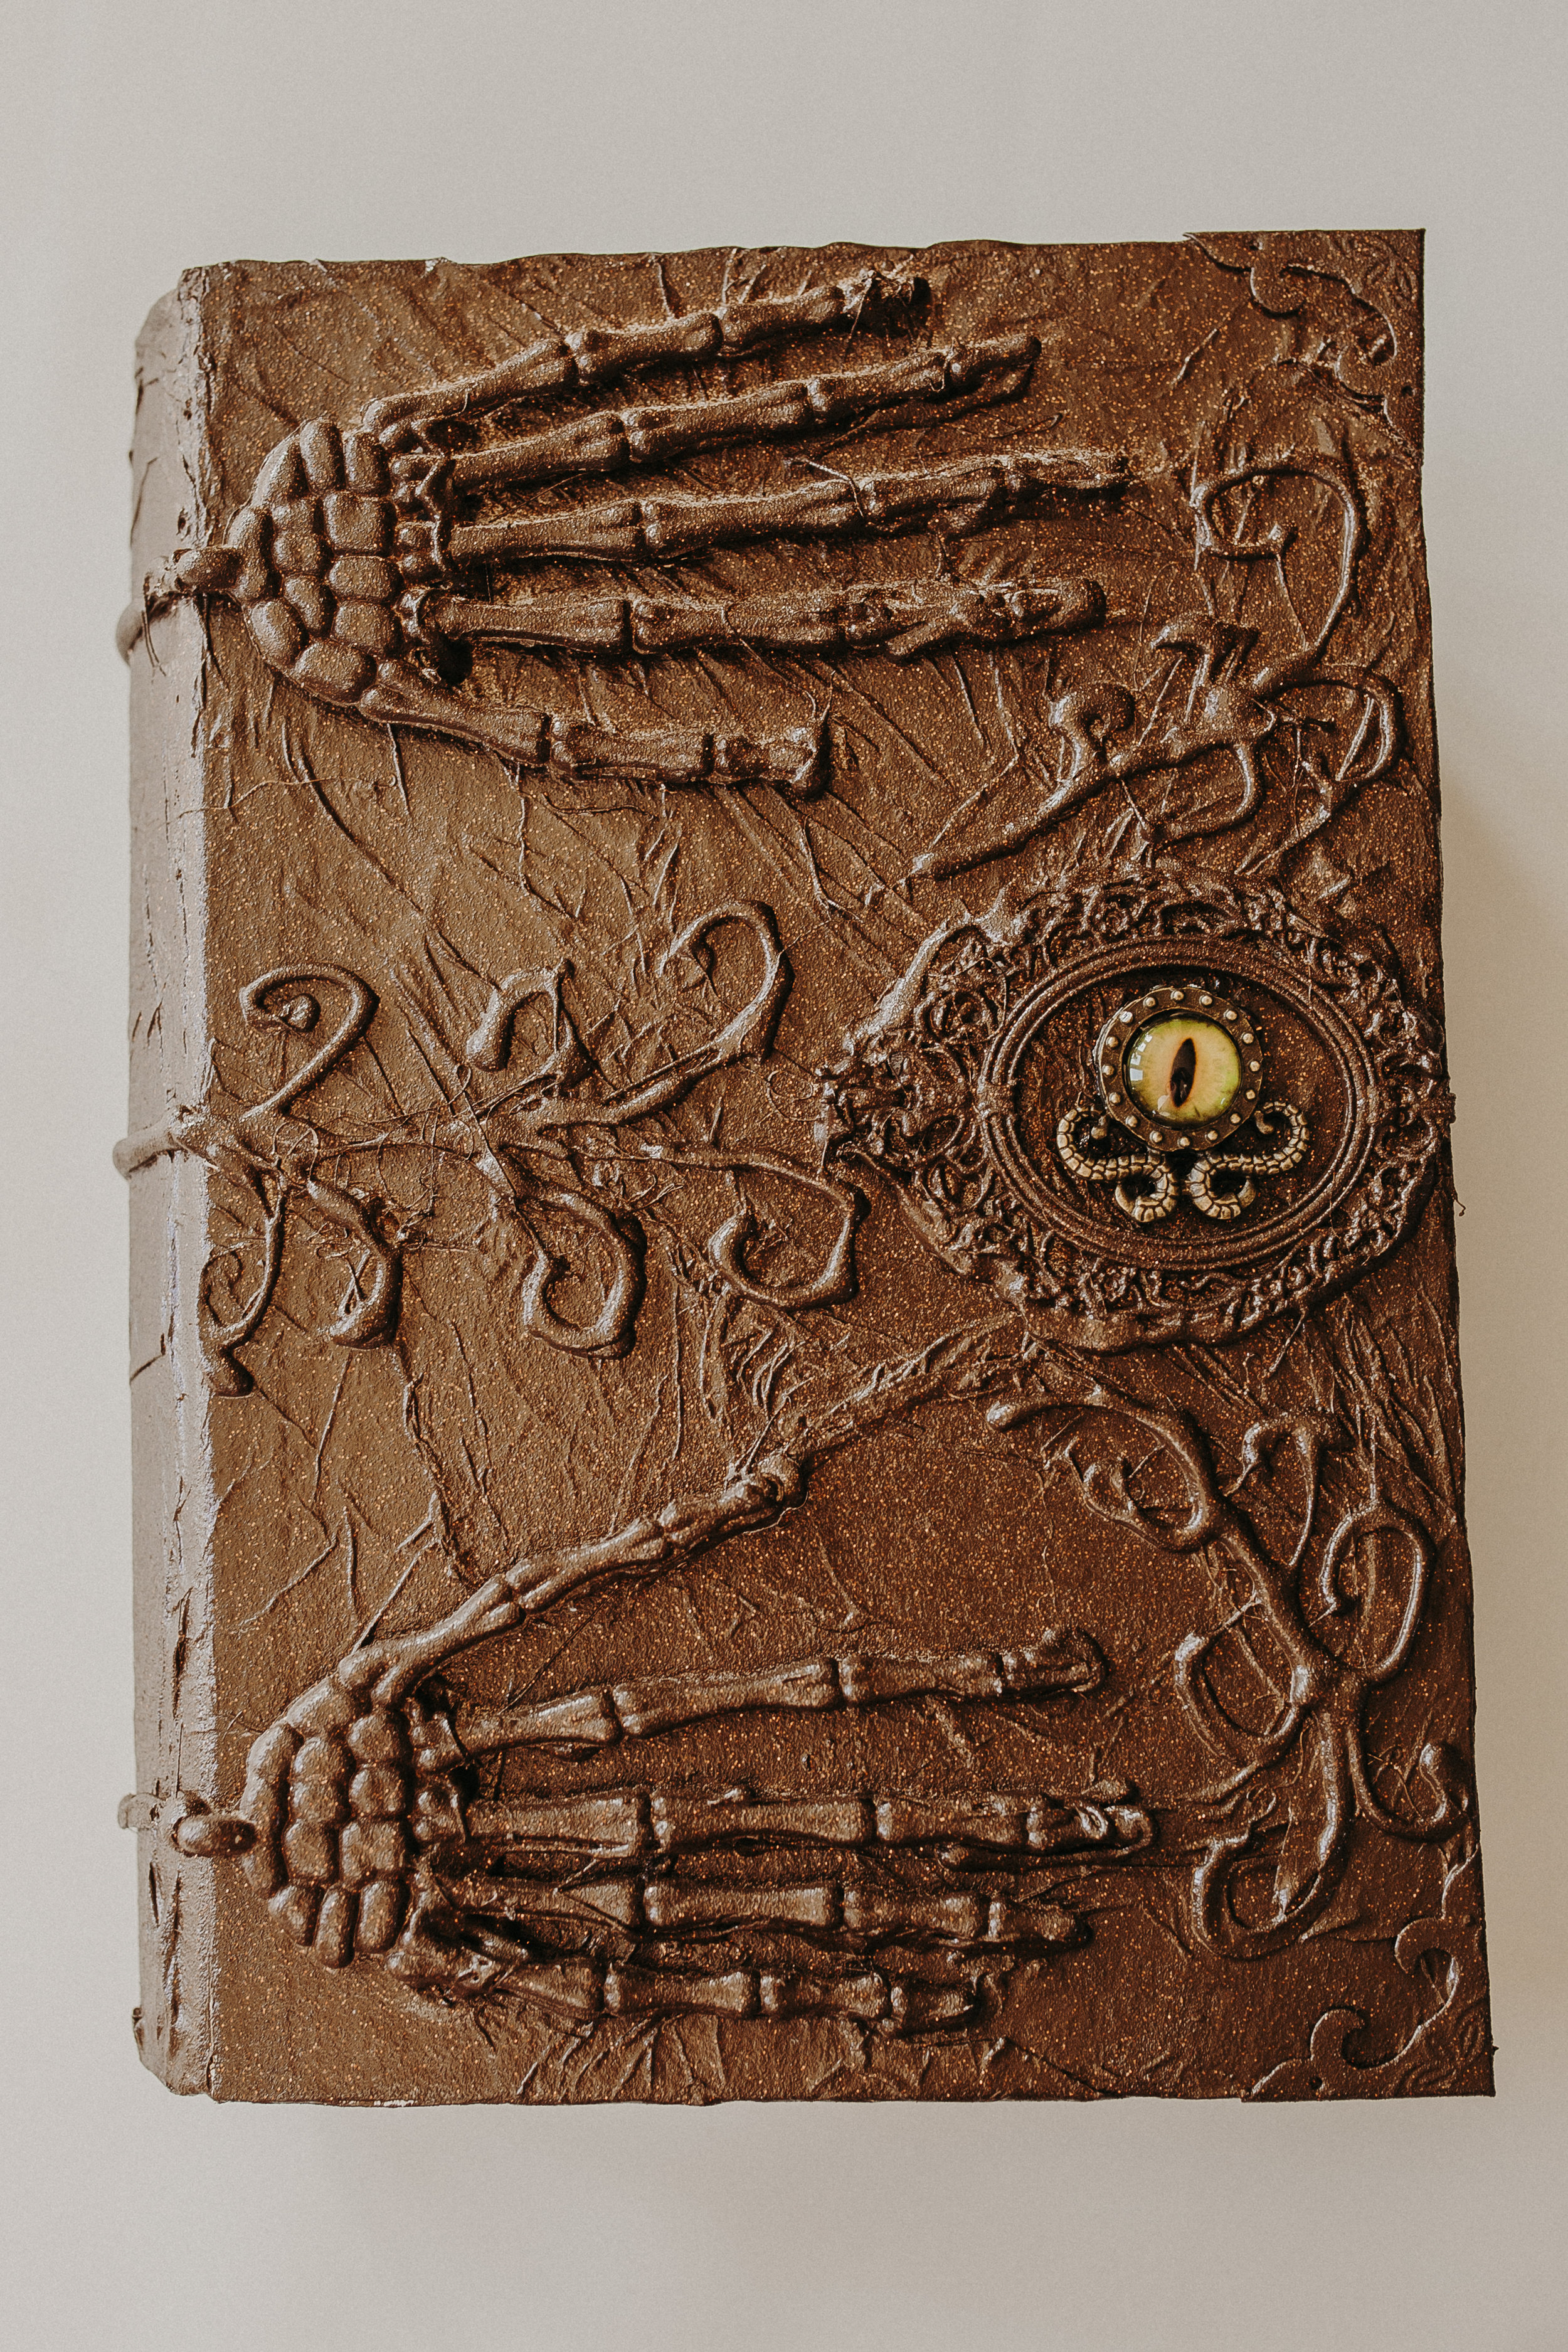 """Step Six: Once your glue has dried completely, paint your book and apply any finishing touches. I left my """"eye"""" until the end so it would stand out more!"""